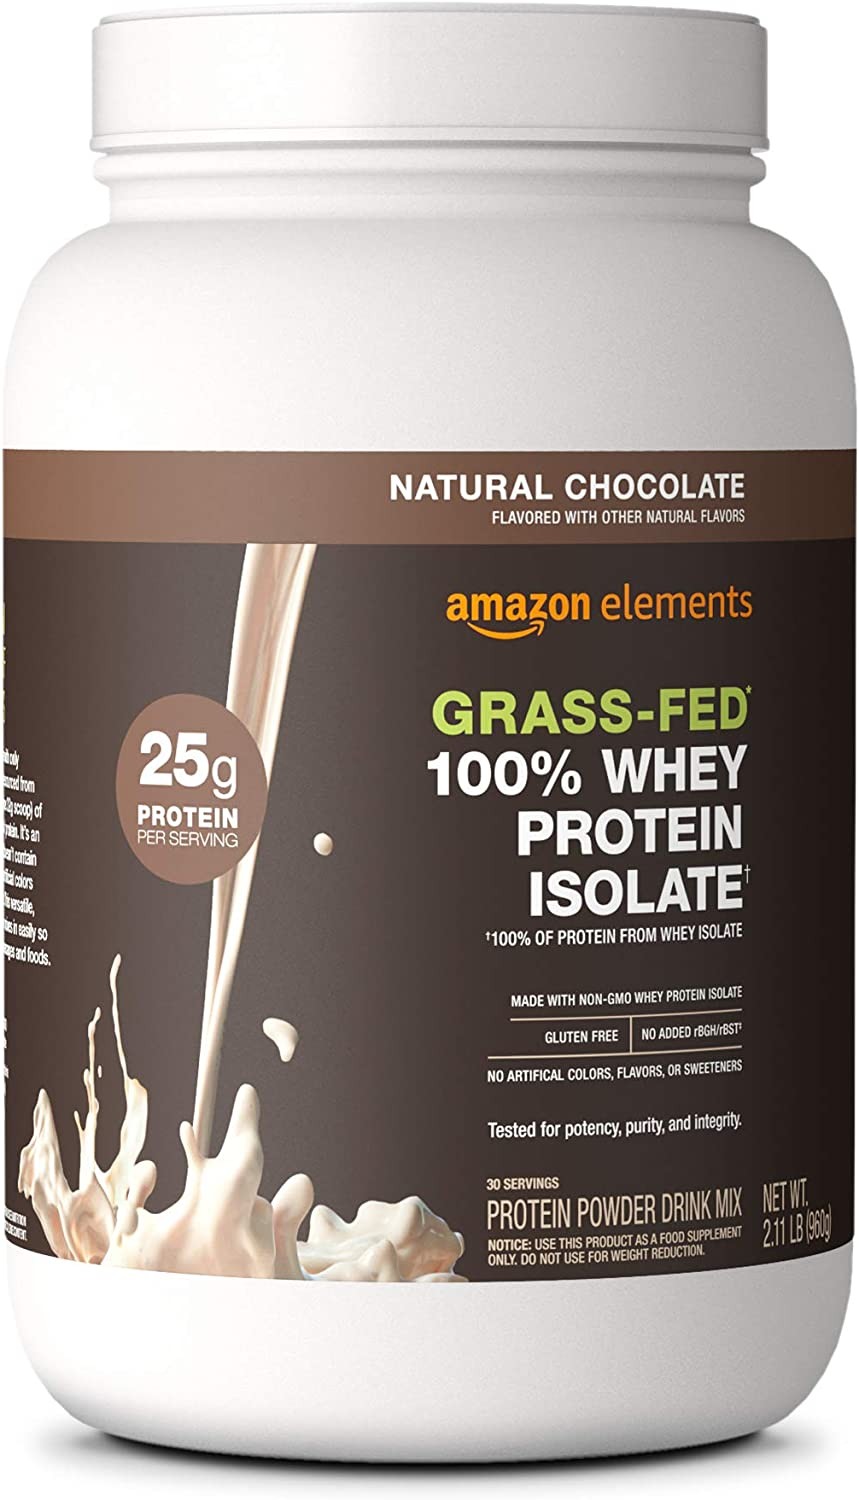 Elements Grass-Fed 100% Whey Protein Isolate Powder, Natural Chocolate, 2.11 lbs (30 Servings) (Packaging may vary): Health & Personal Care